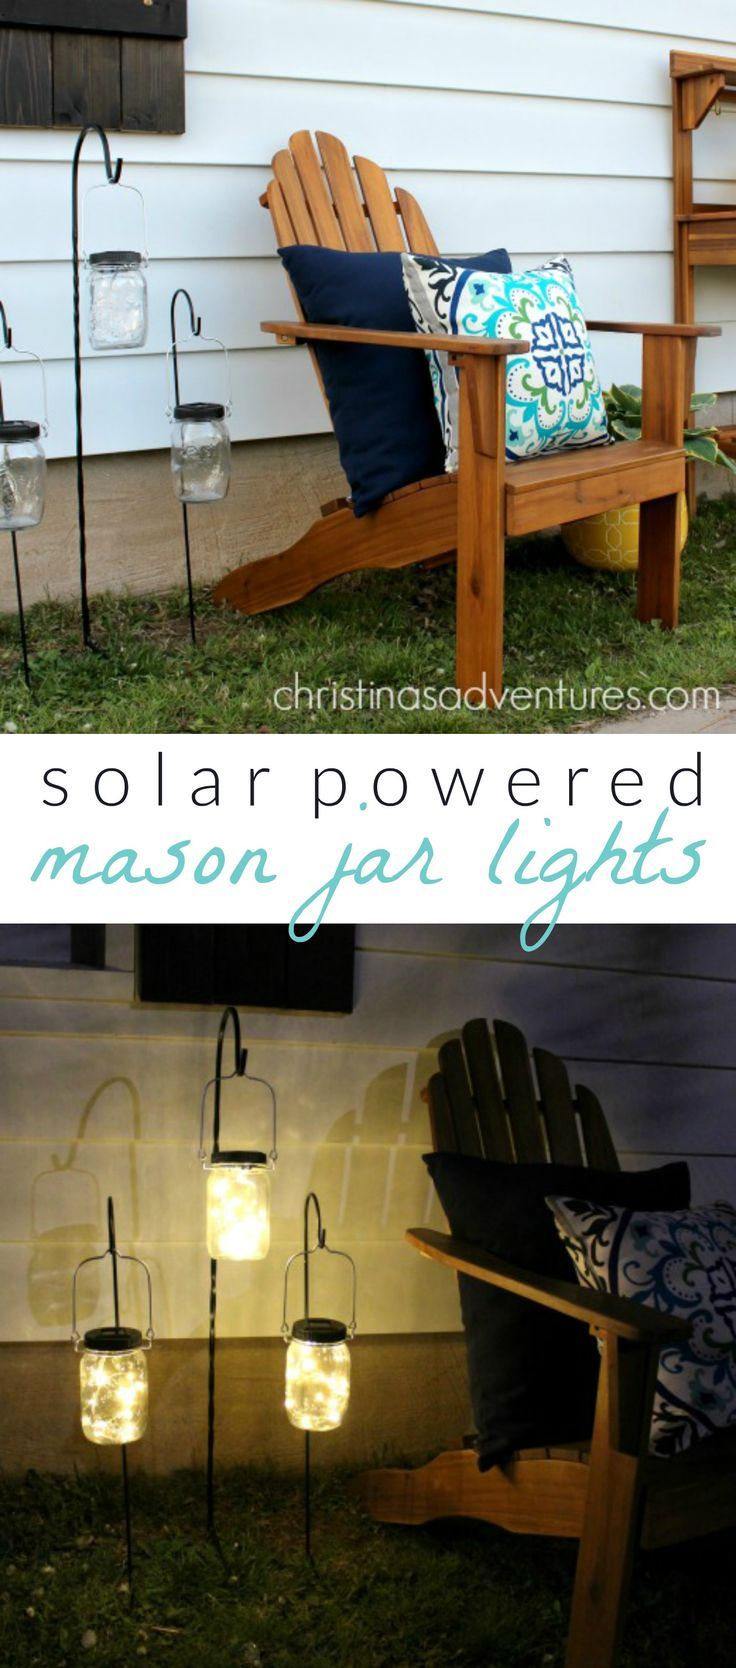 solar powered mason jar lights - these are the CUTEST! Perfect for outdoor entertaining & ambiance <3